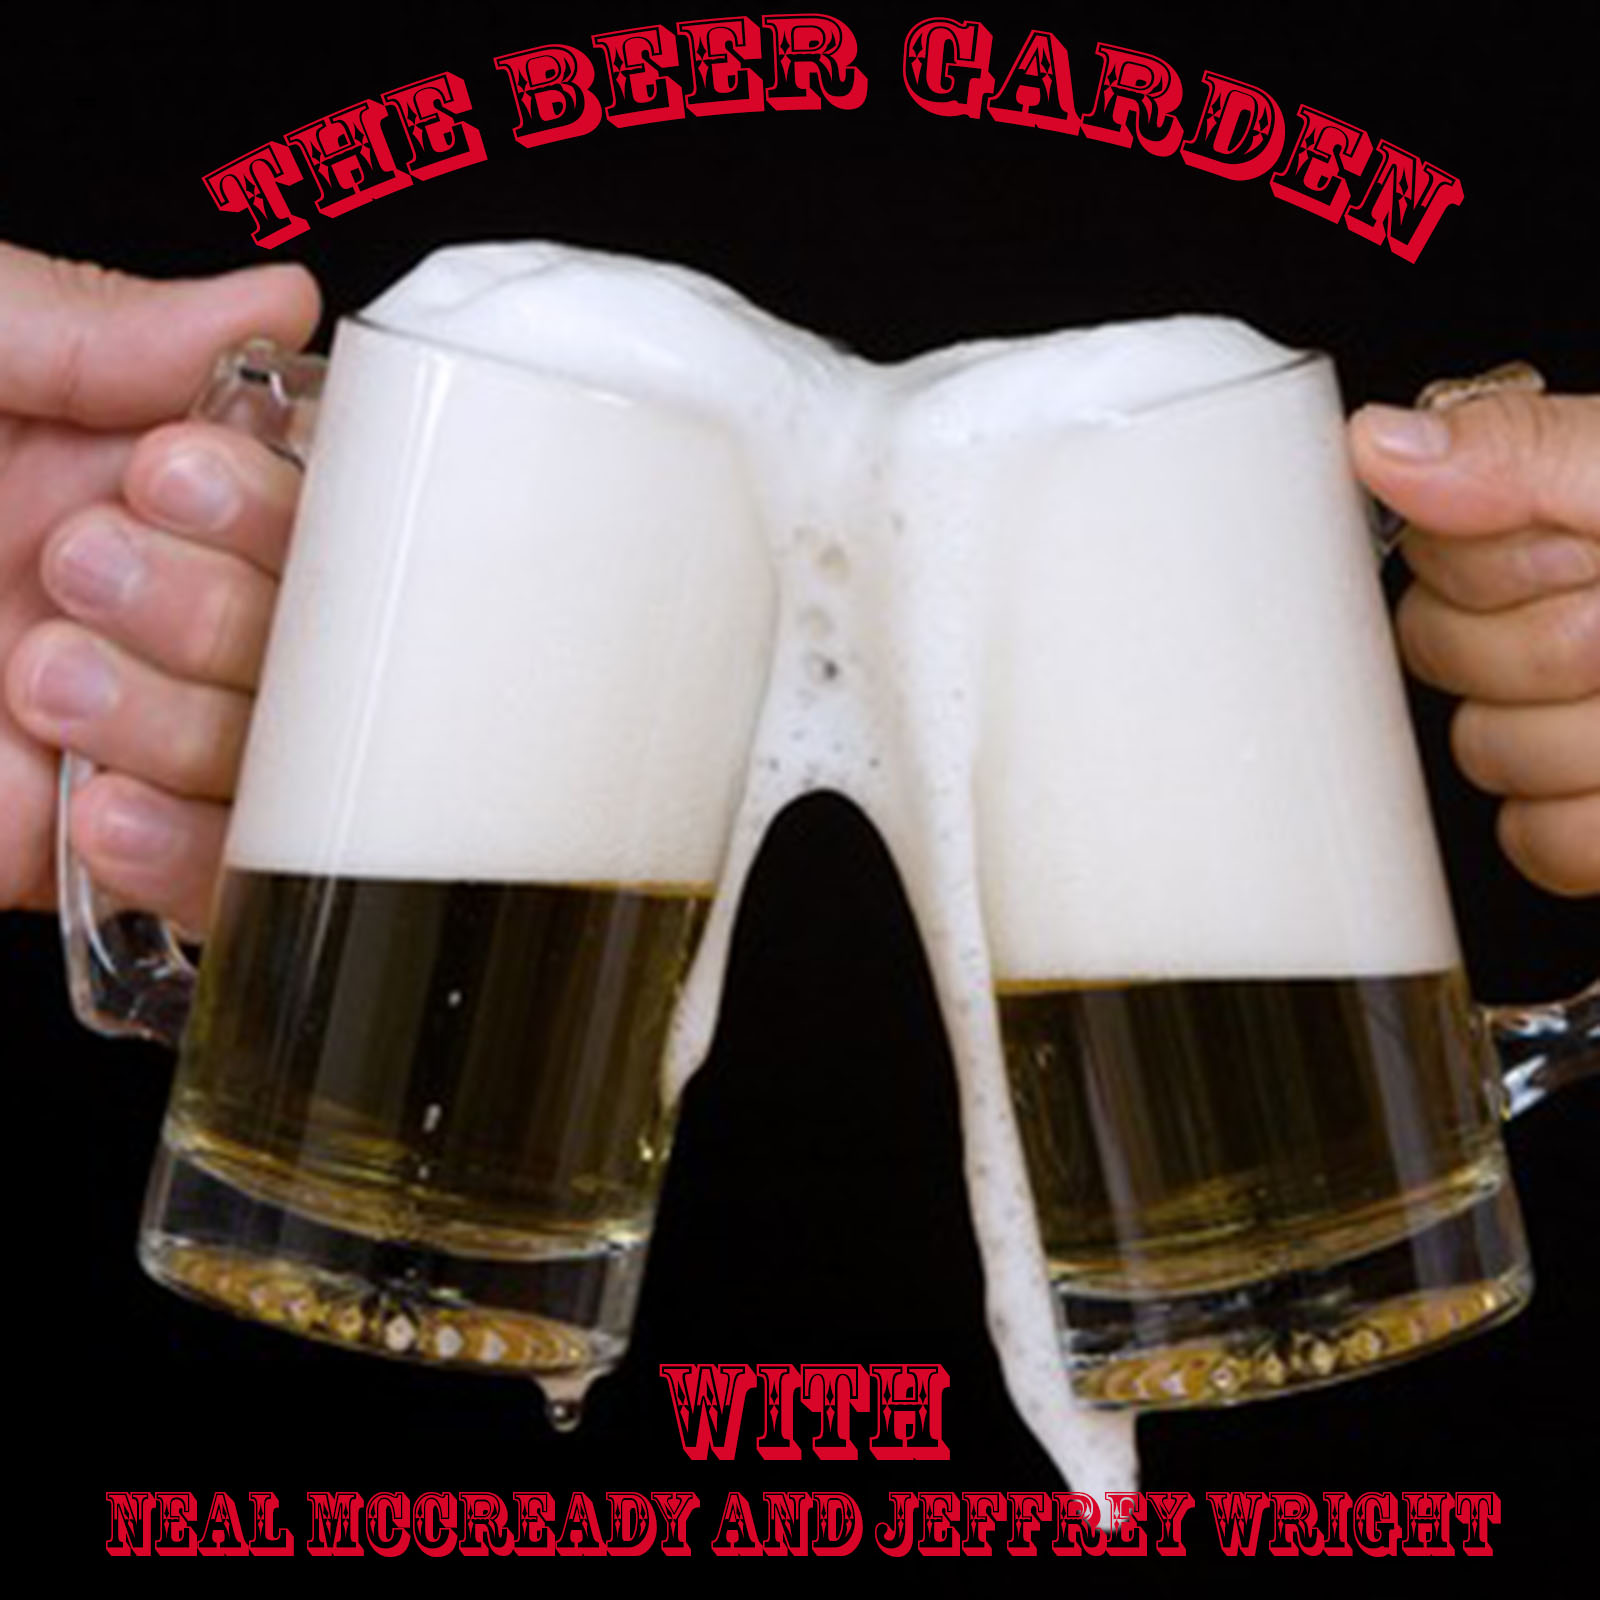 The Beer Garden with Neal McCready and Jeffrey Wright